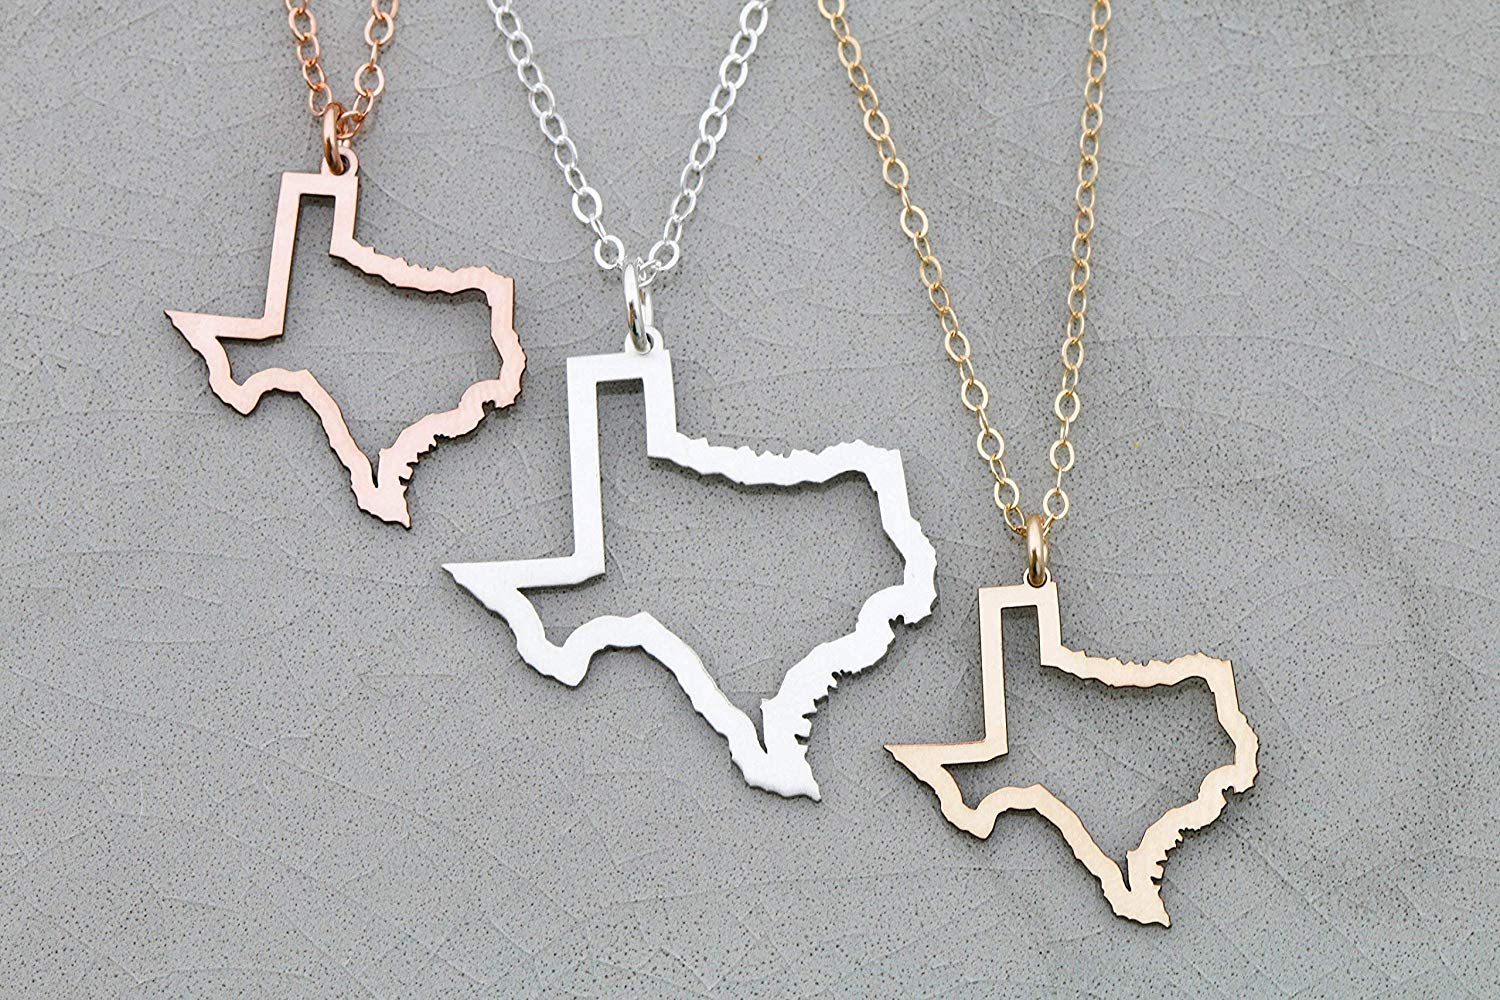 Texas State Outline Necklace - IBD - Lone Star Territory Pendant - Chain Length Options -Customize Charm Size - Ships in 1 Business Day - 935 Sterling Silver 14K Rose Gold Filled Charm